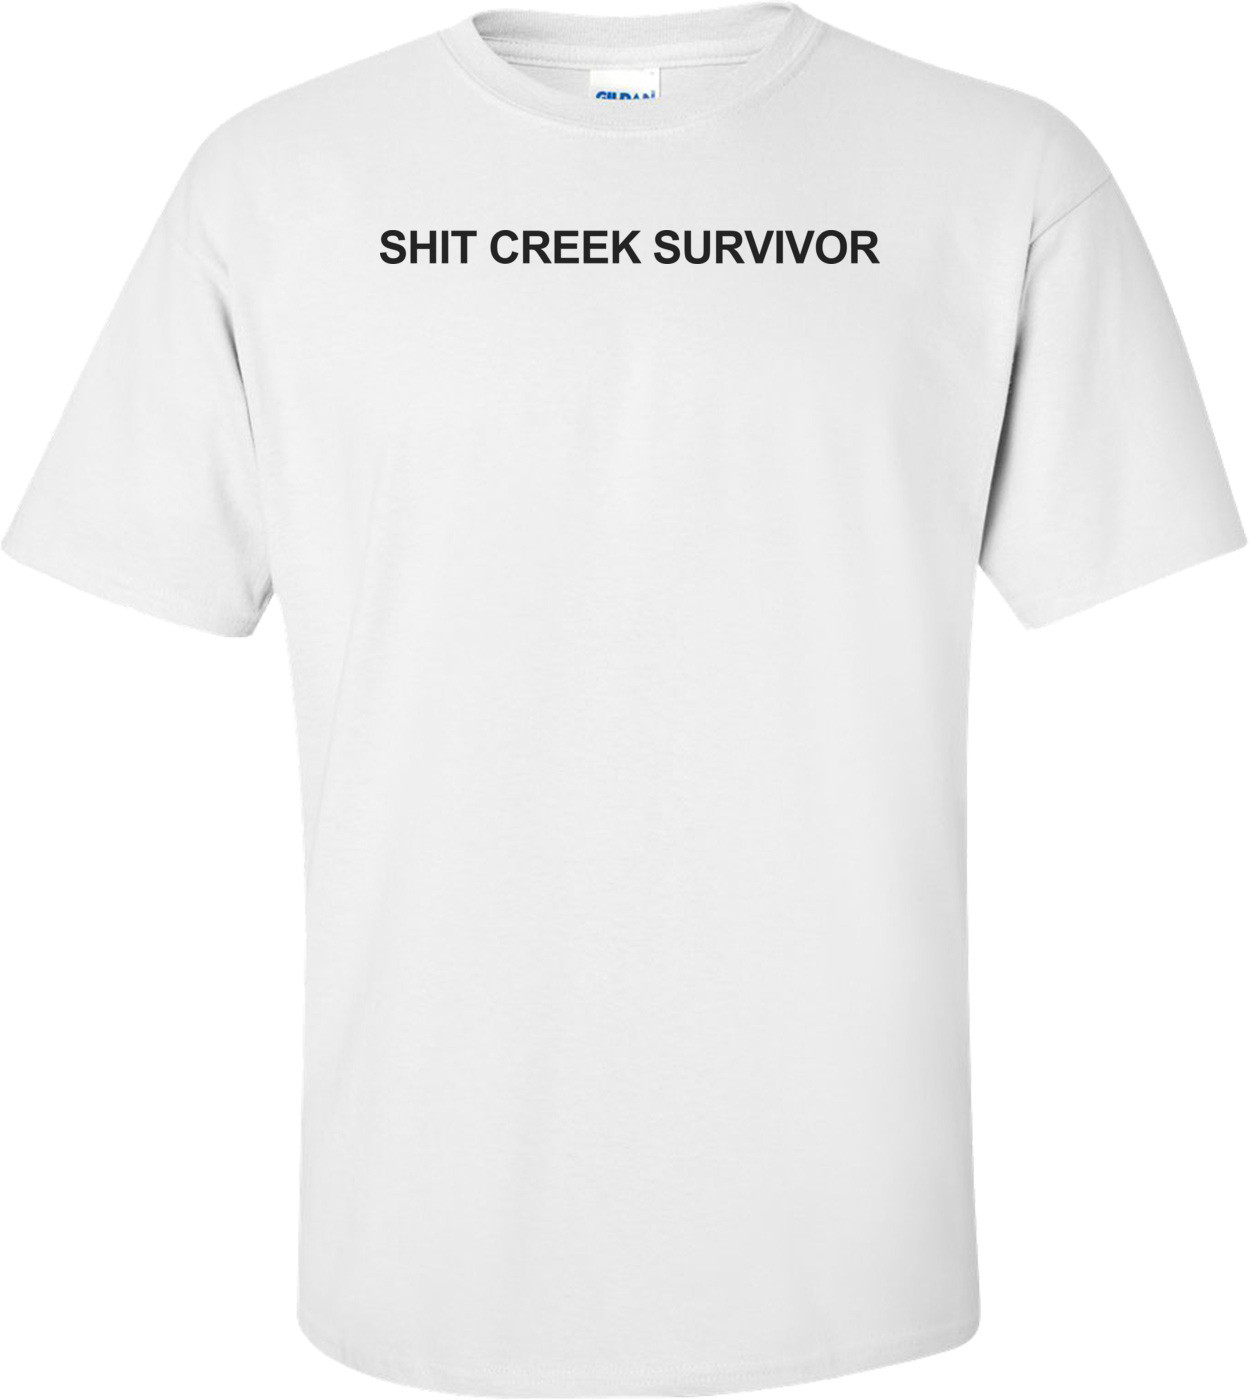 I Survived Shit Creek - Funny T-shirt